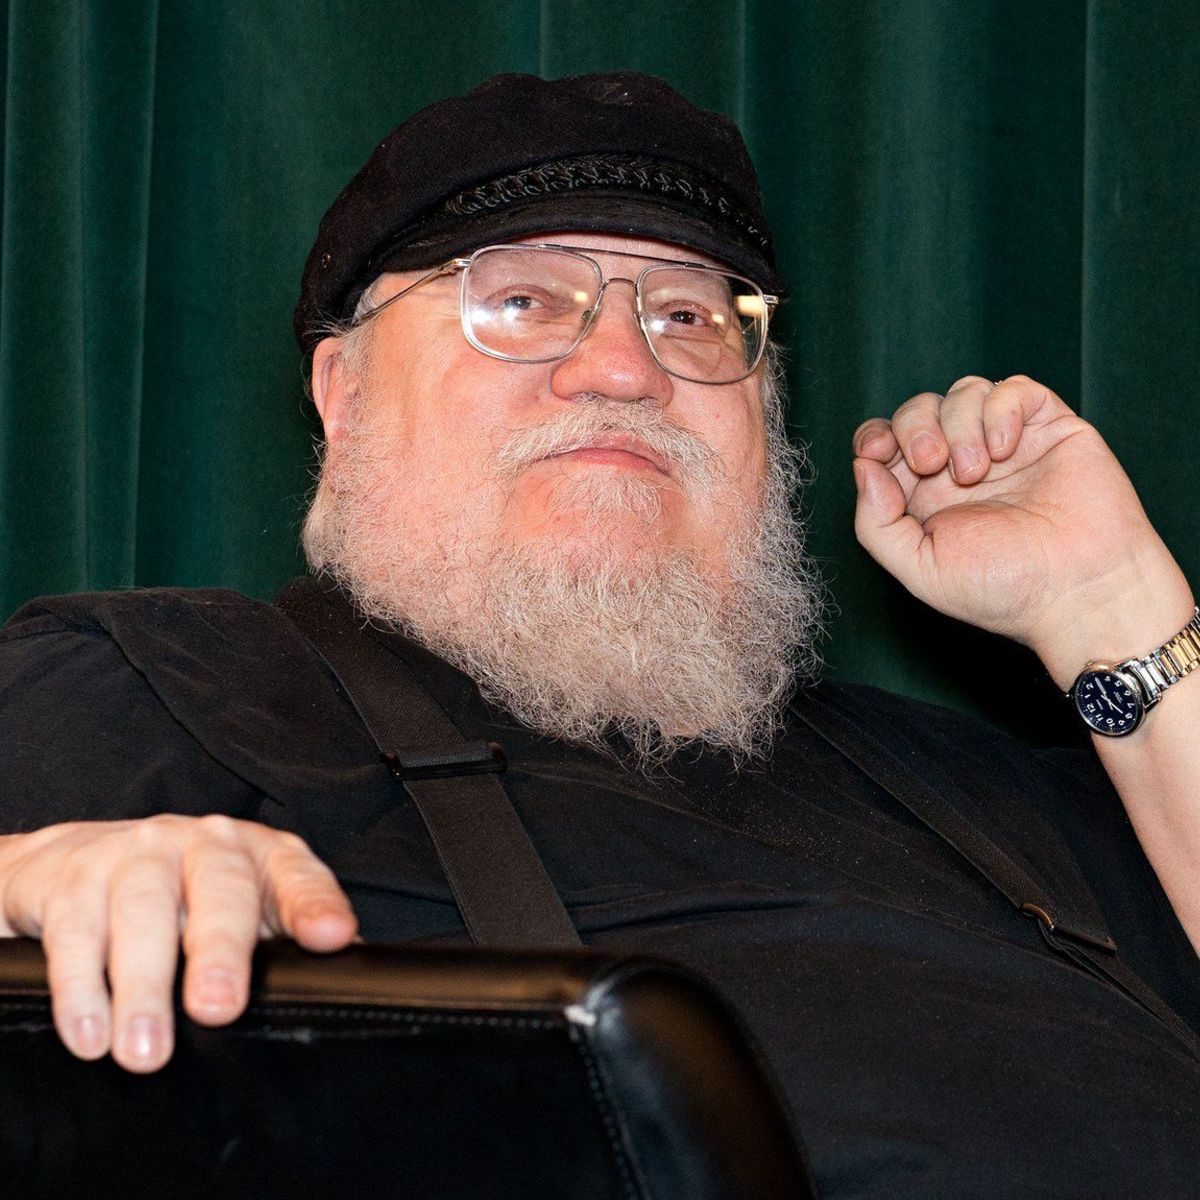 George R.R. Martin's Superhero Franchise Wild Cards Is Coming To Hulu